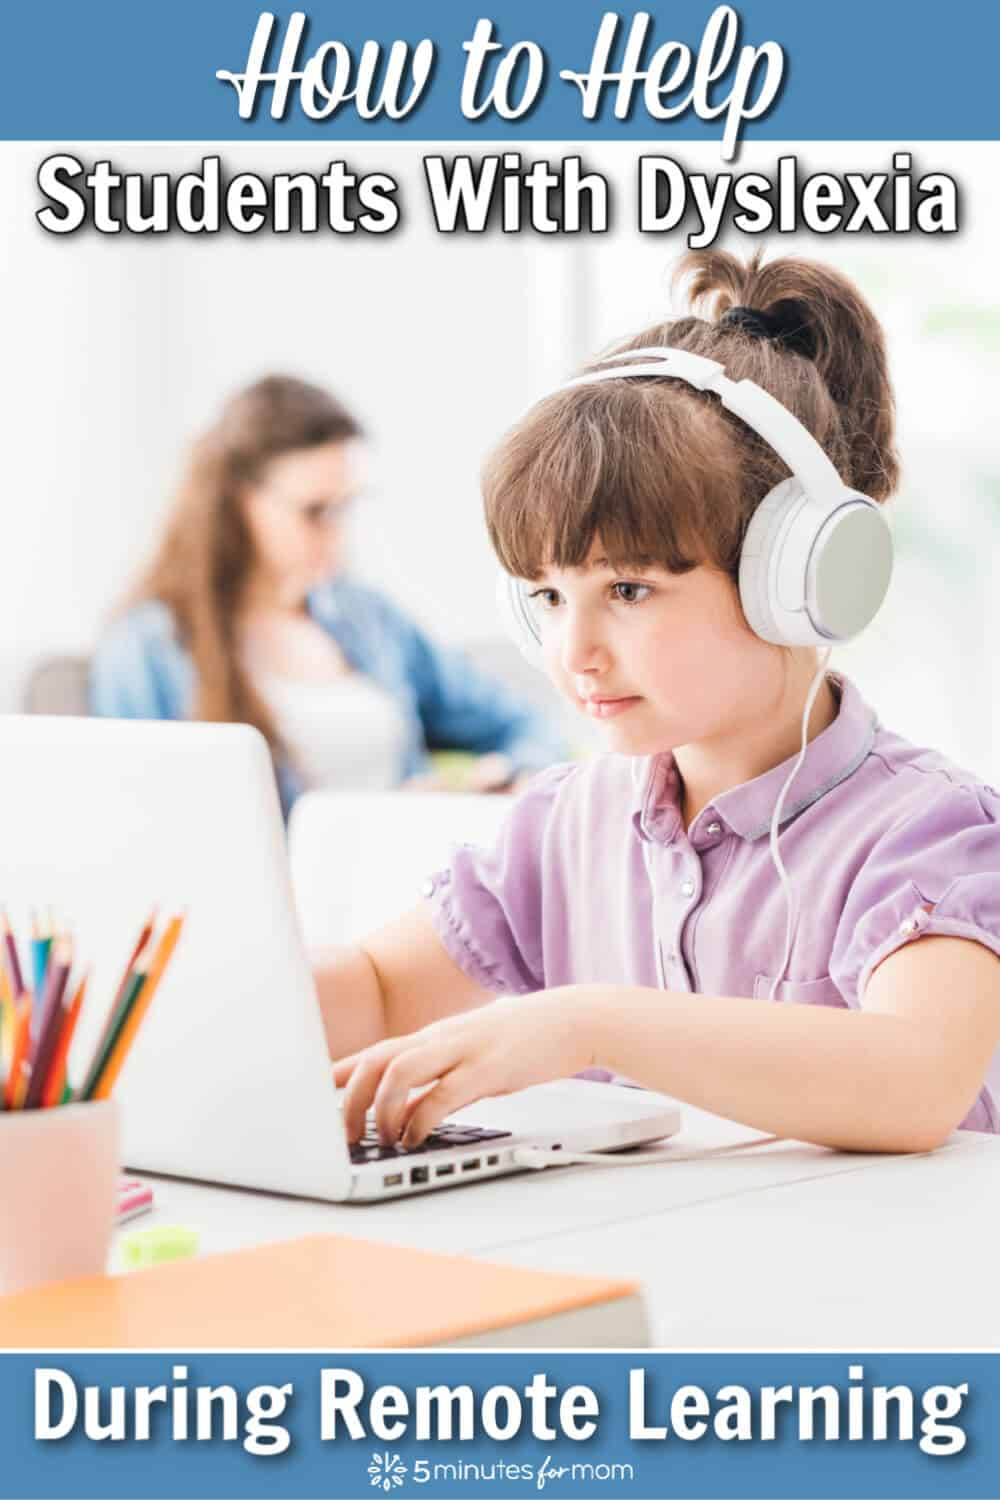 How to Help Students with Dyslexia During Remote Learning